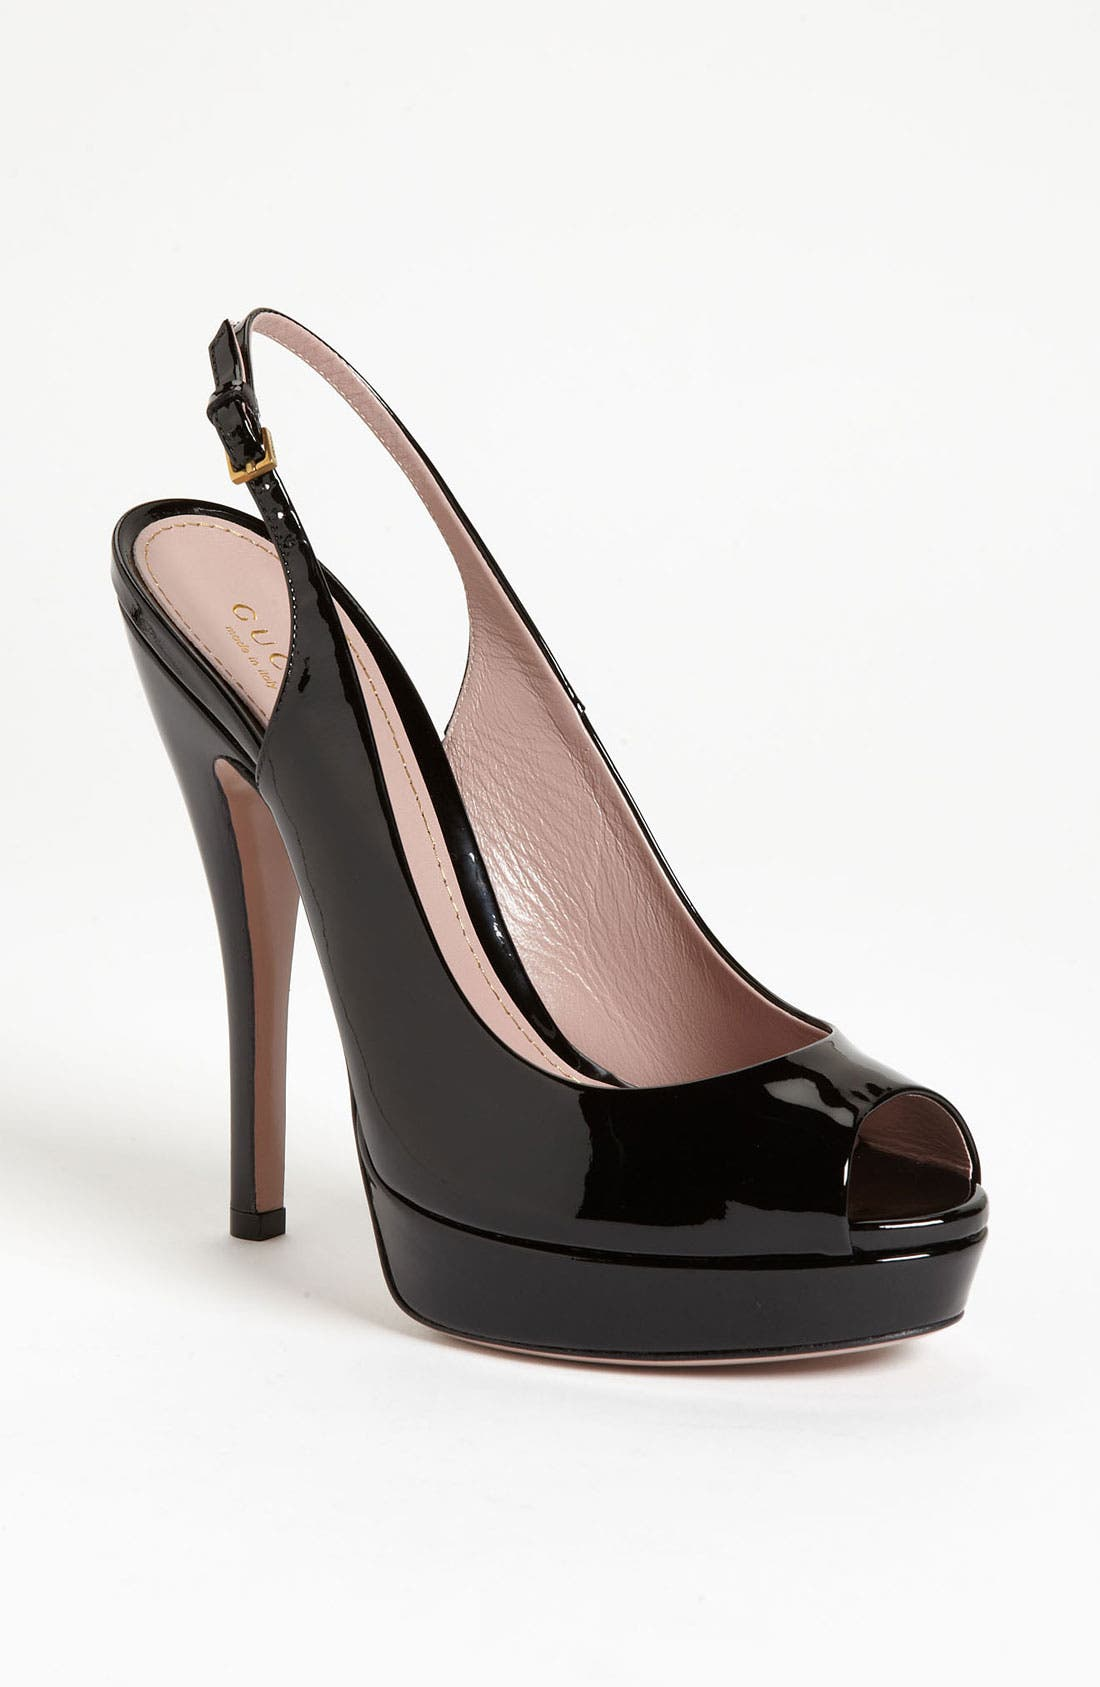 Main Image - Gucci 'Lisbeth' Slingback Pump